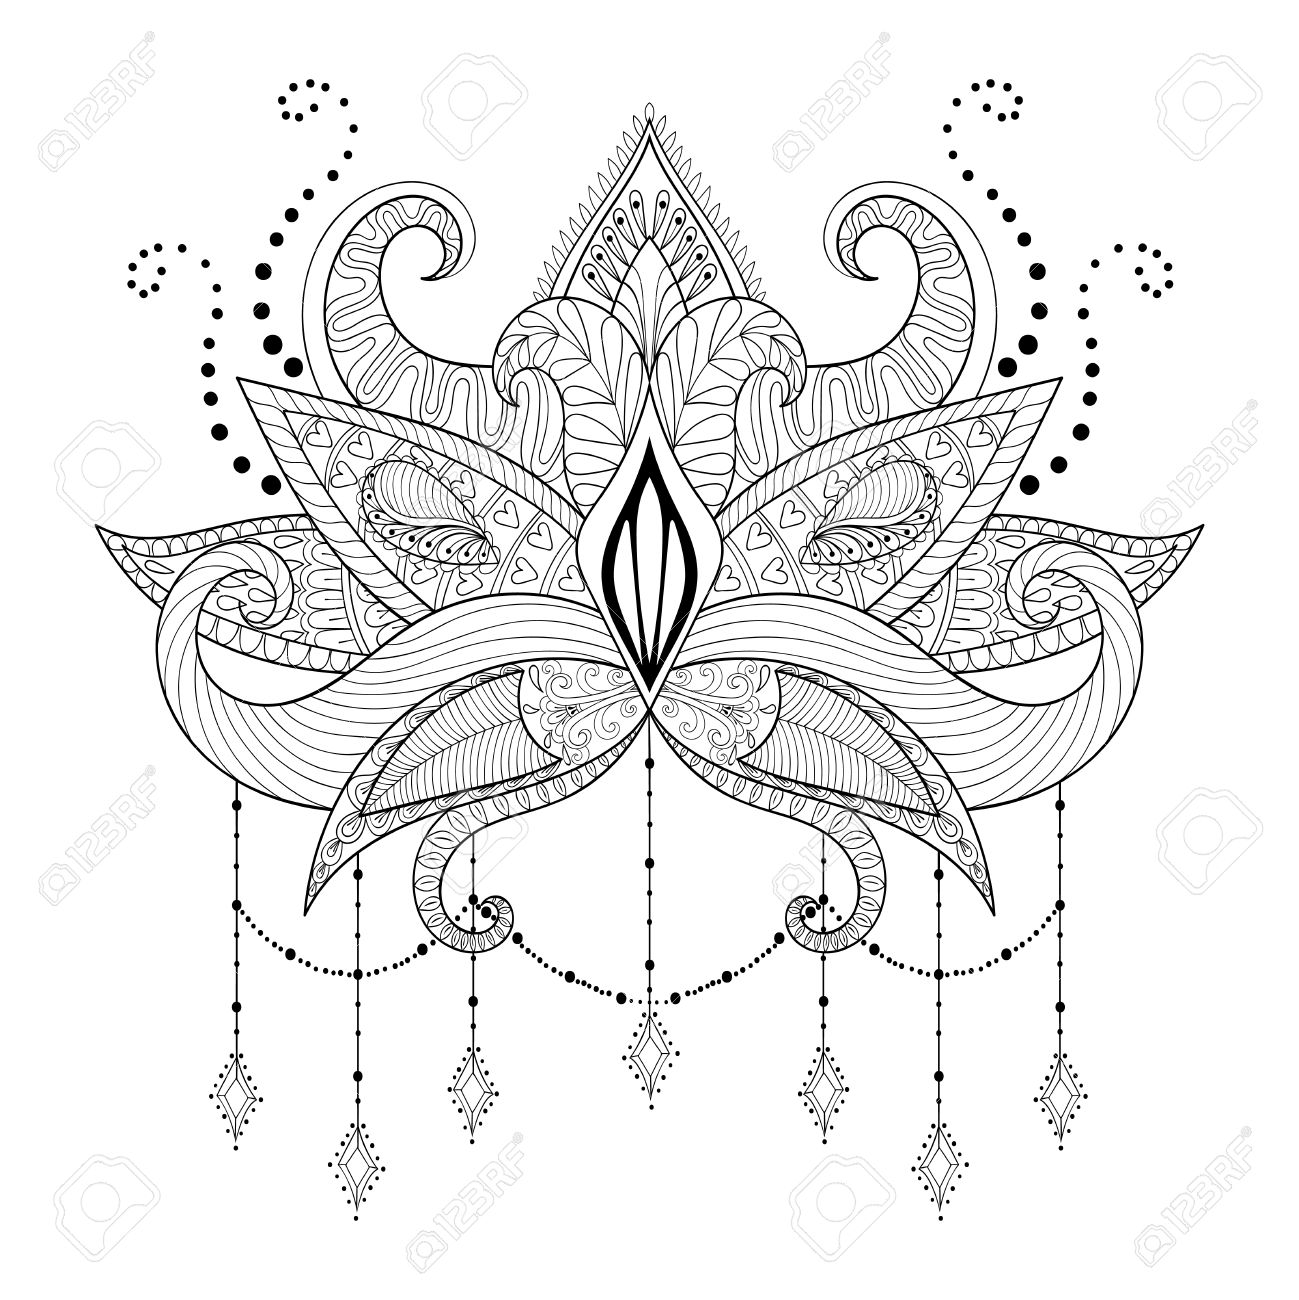 Boho doodle lotus flower blackwork tattoo design indian paisley boho doodle lotus flower blackwork tattoo design indian paisley hand drawn vector isolated mightylinksfo Gallery